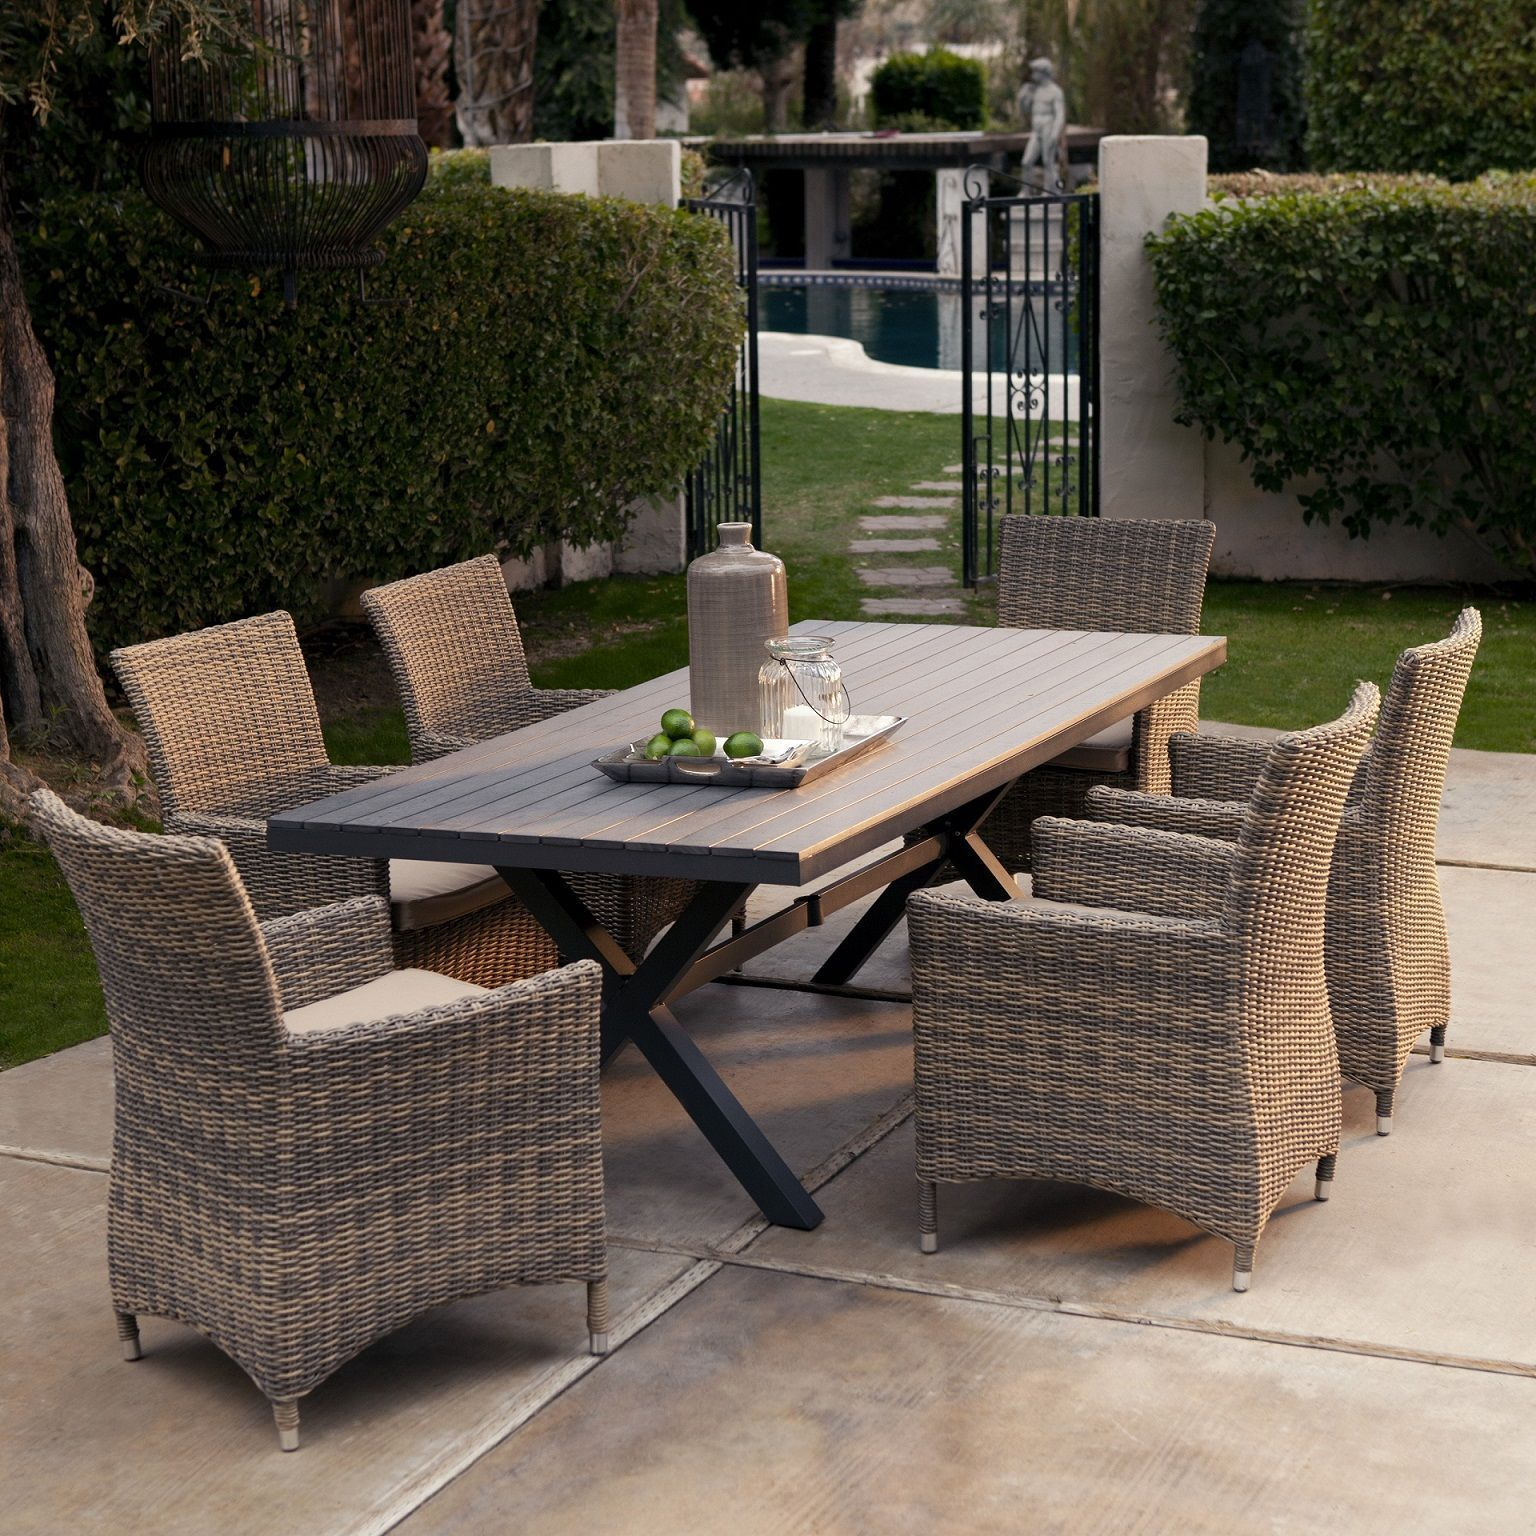 Superieur Resin Wicker Outdoor Furniture Reviews